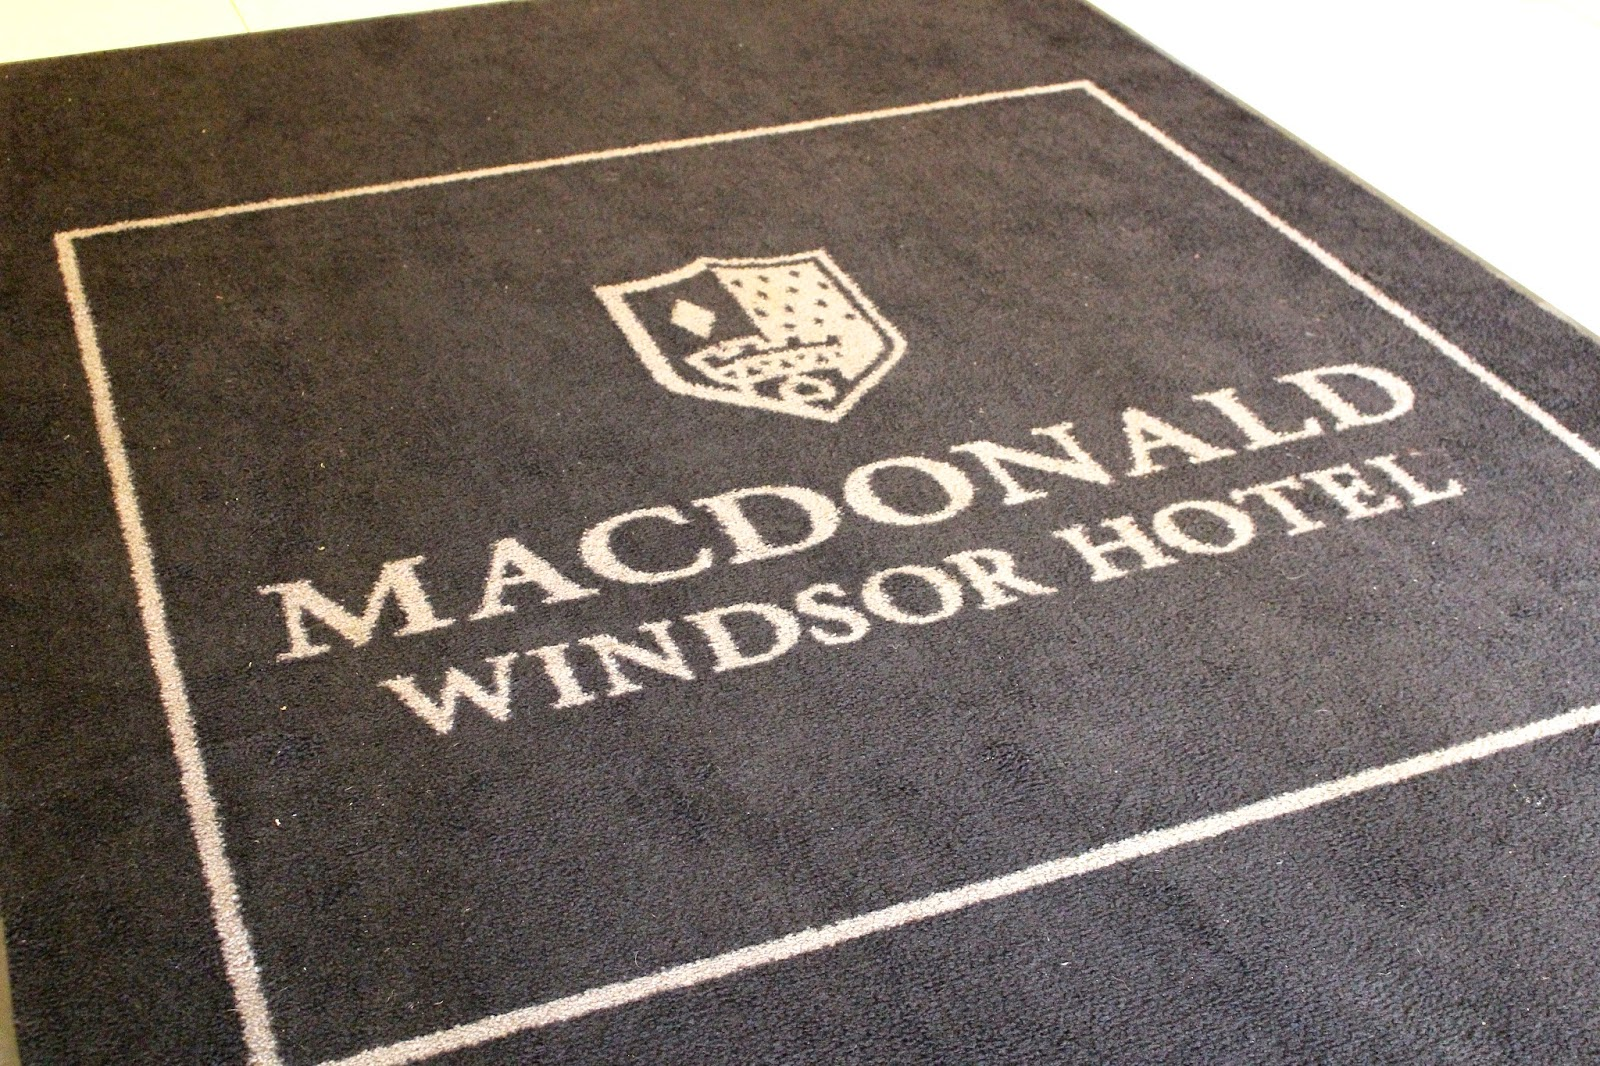 Macdonald Hotel Afternoon Tea